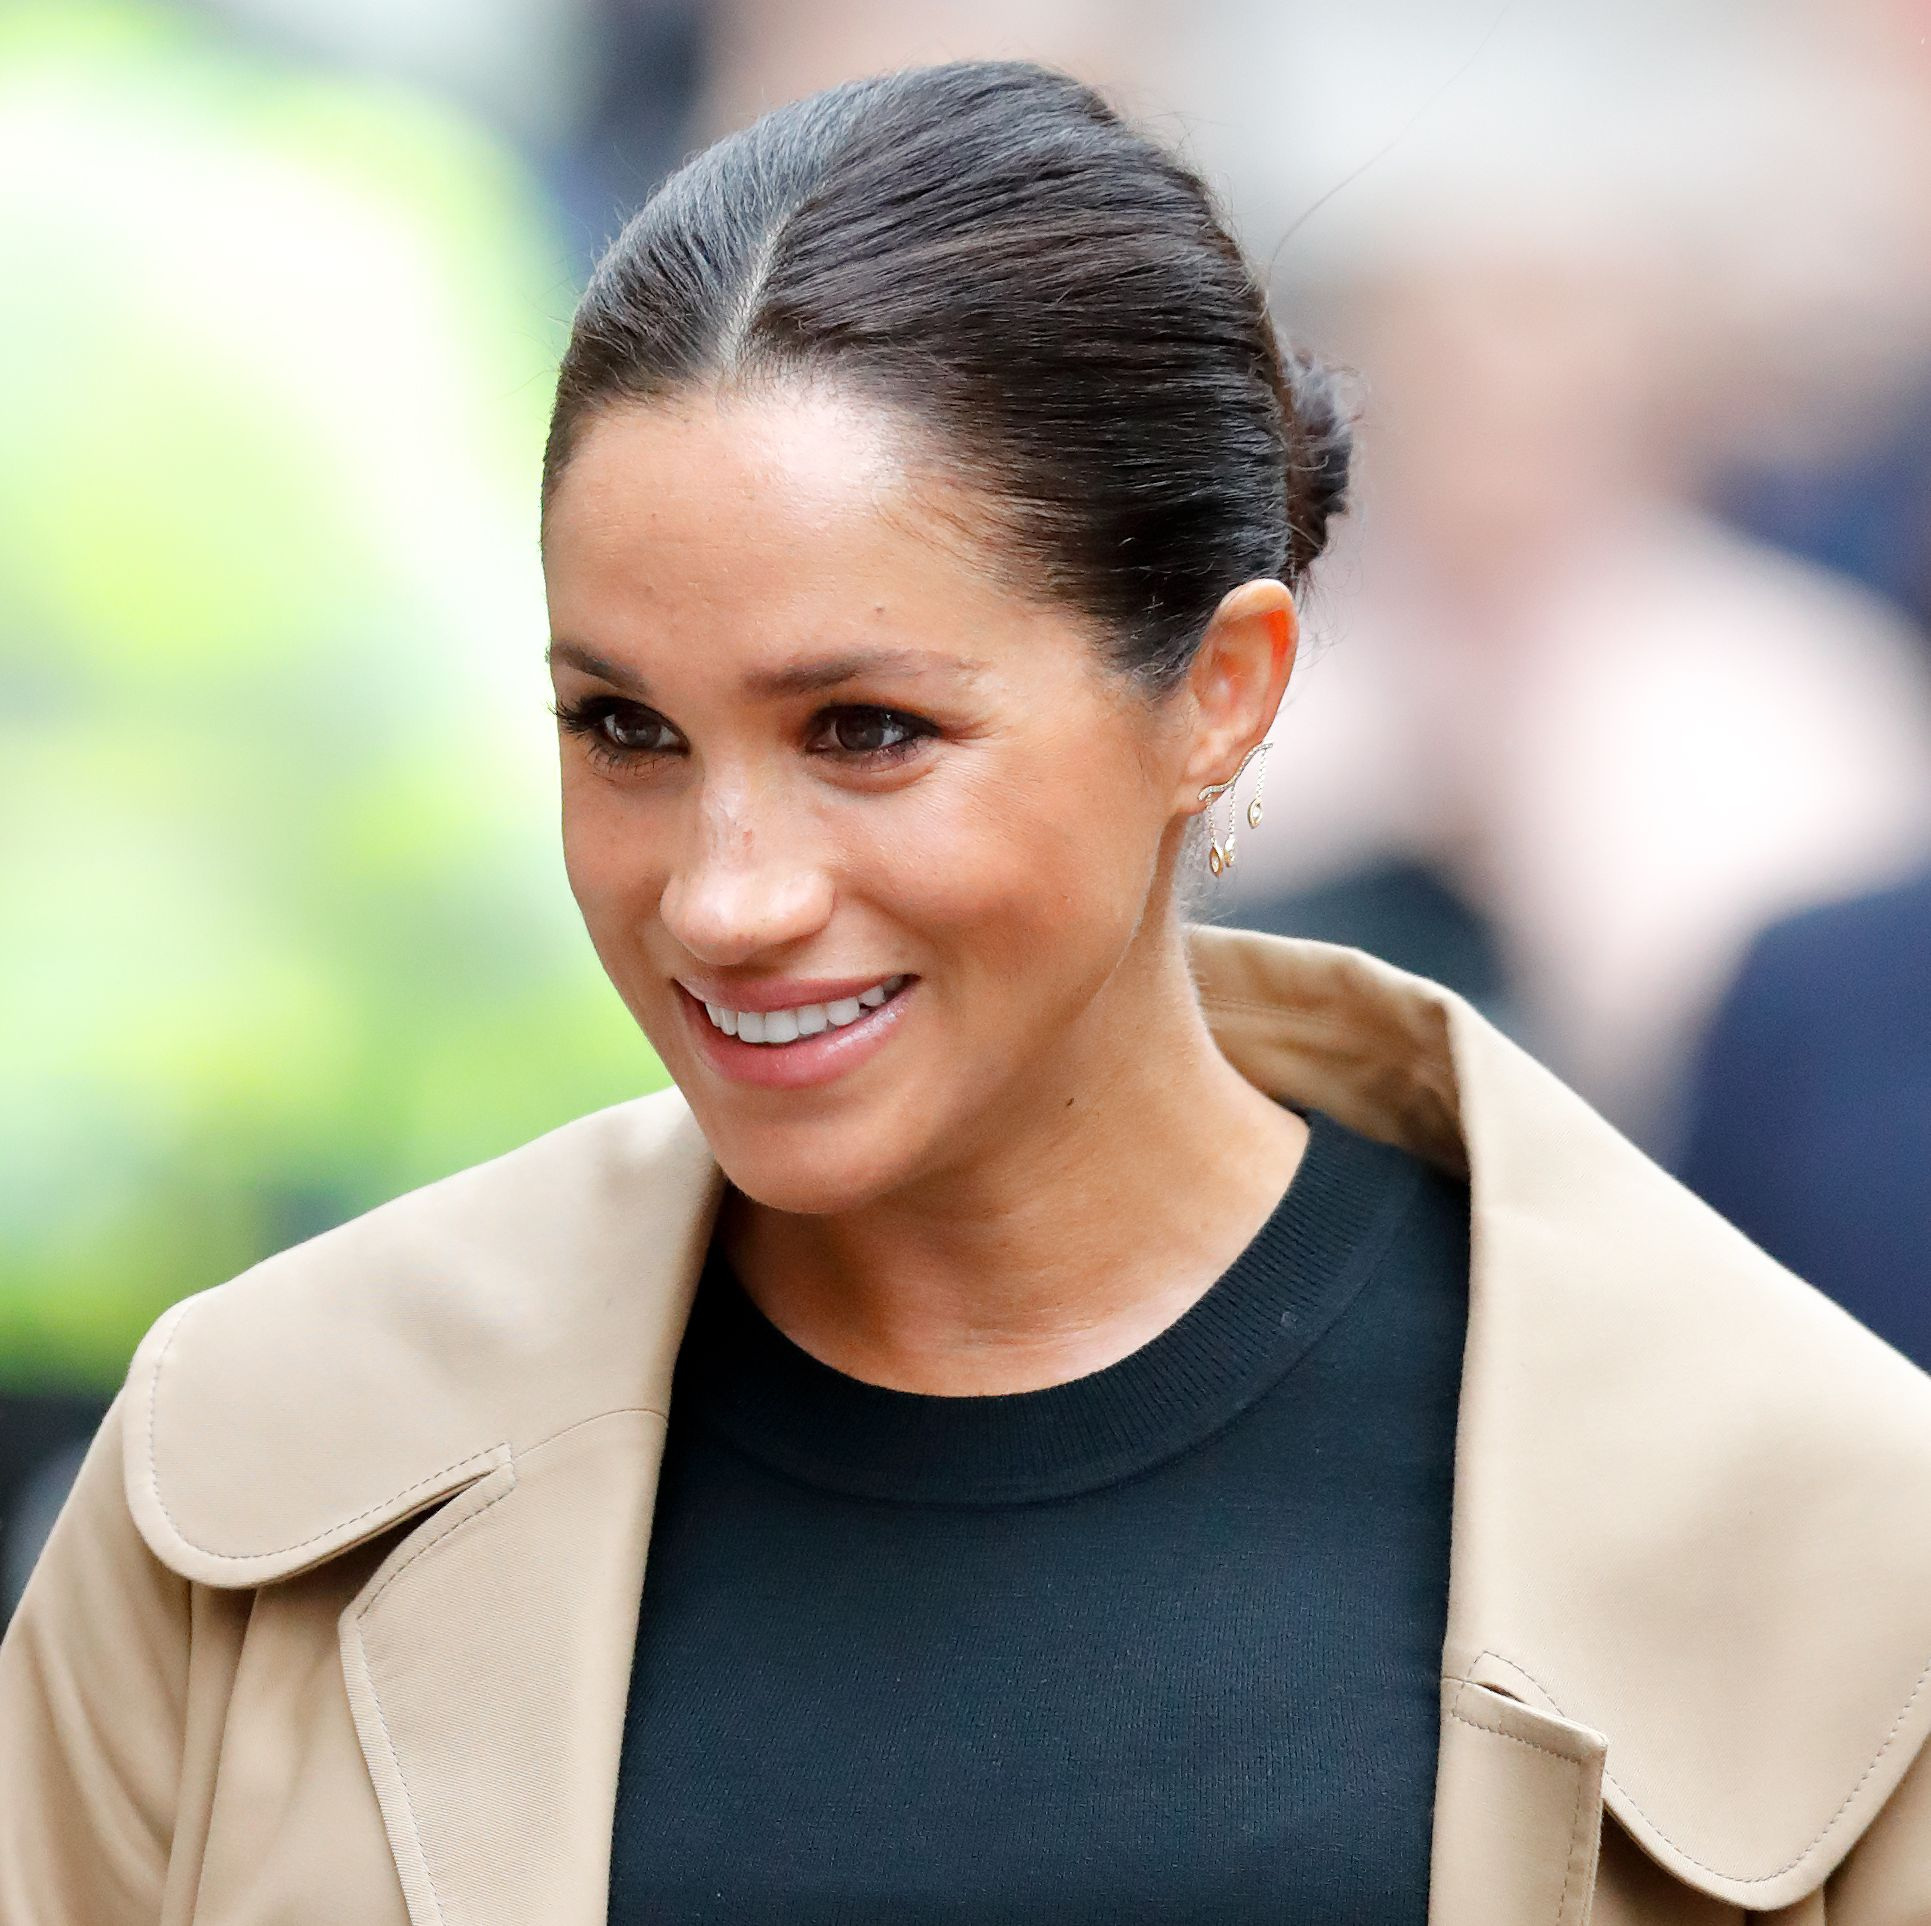 A British Newspaper Is Blaming Meghan Markle's Breakfast Habits for a Drought